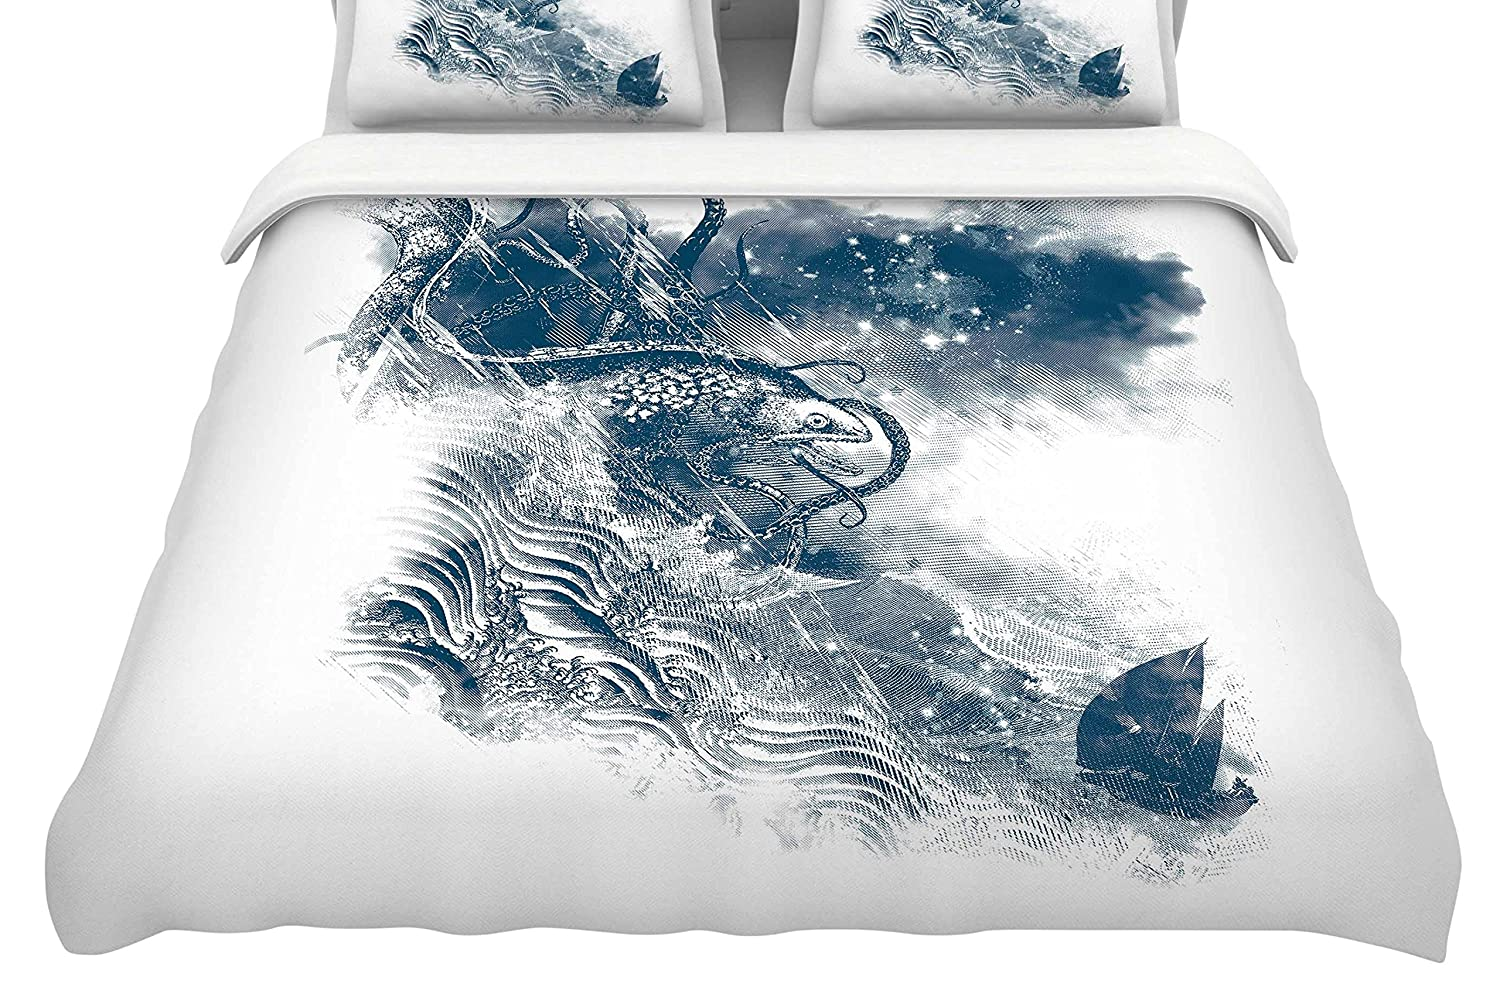 88 x 88, Kess InHouse Frederic Levy-Hadida No Escape Featherweight Queen Duvet Cover